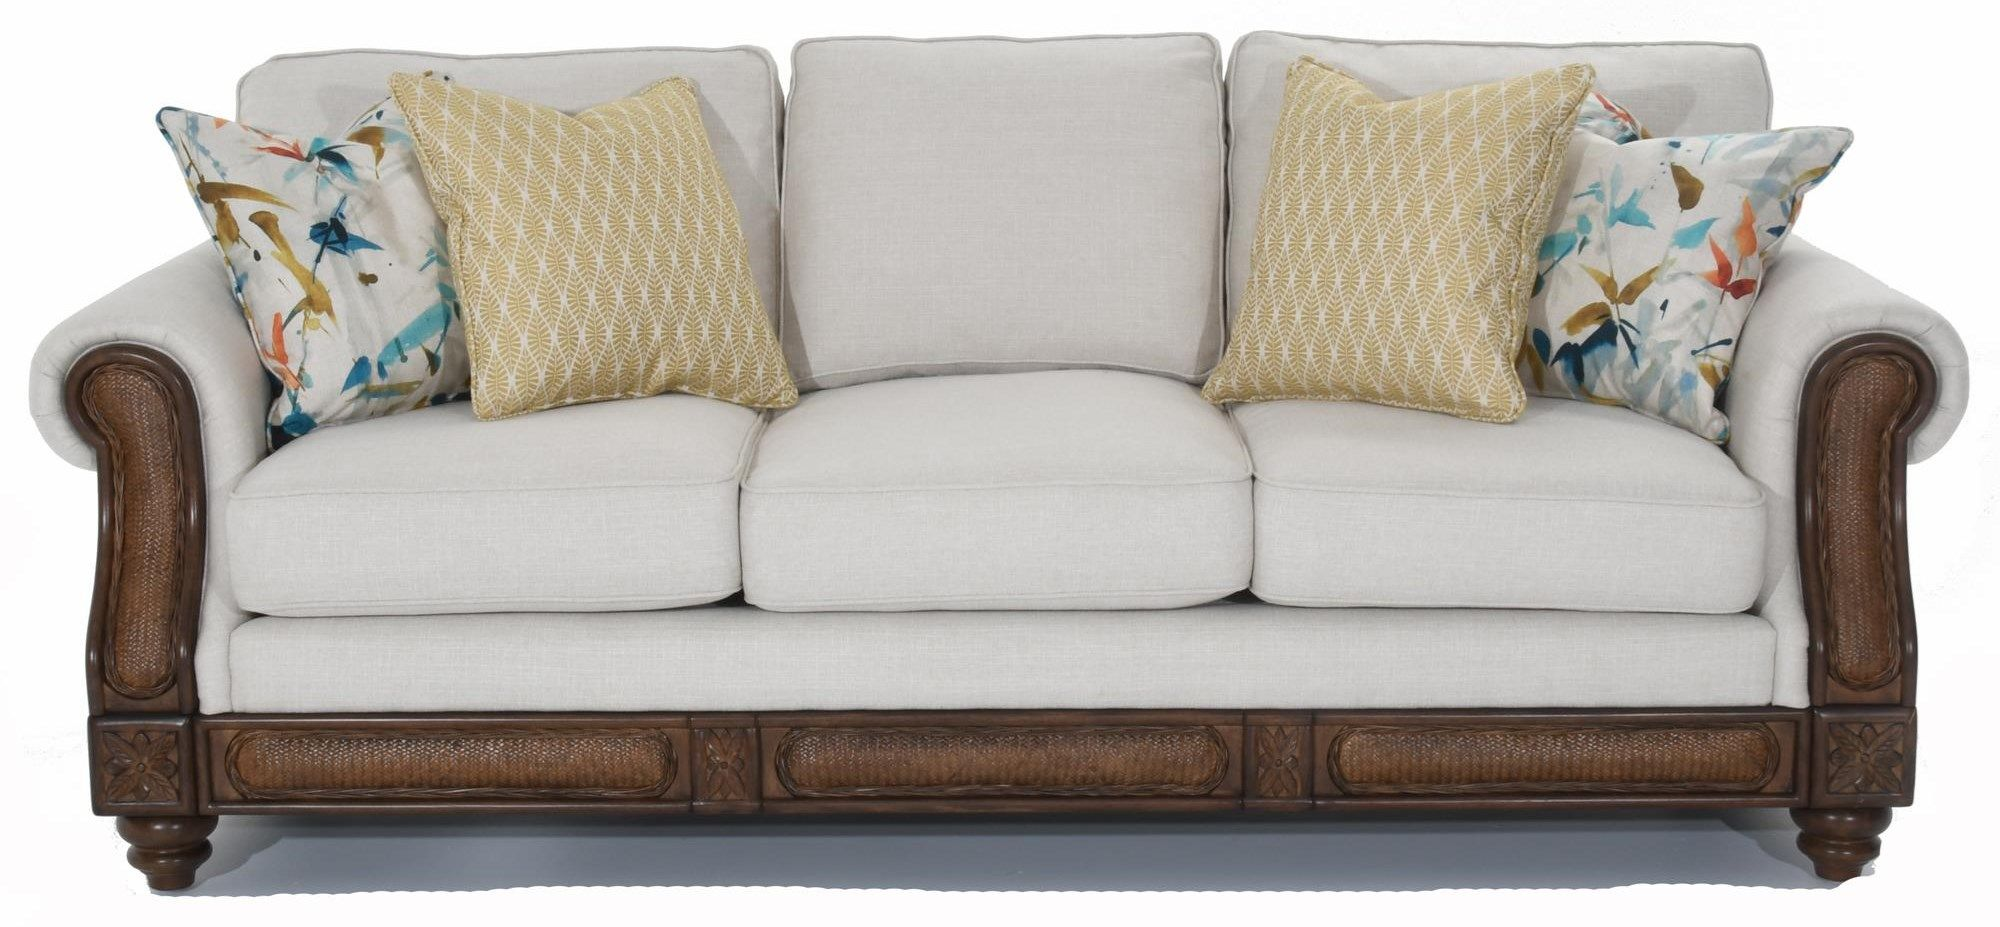 68086 Rolled Arm Sofa With Rattan Detail By Trend Resources